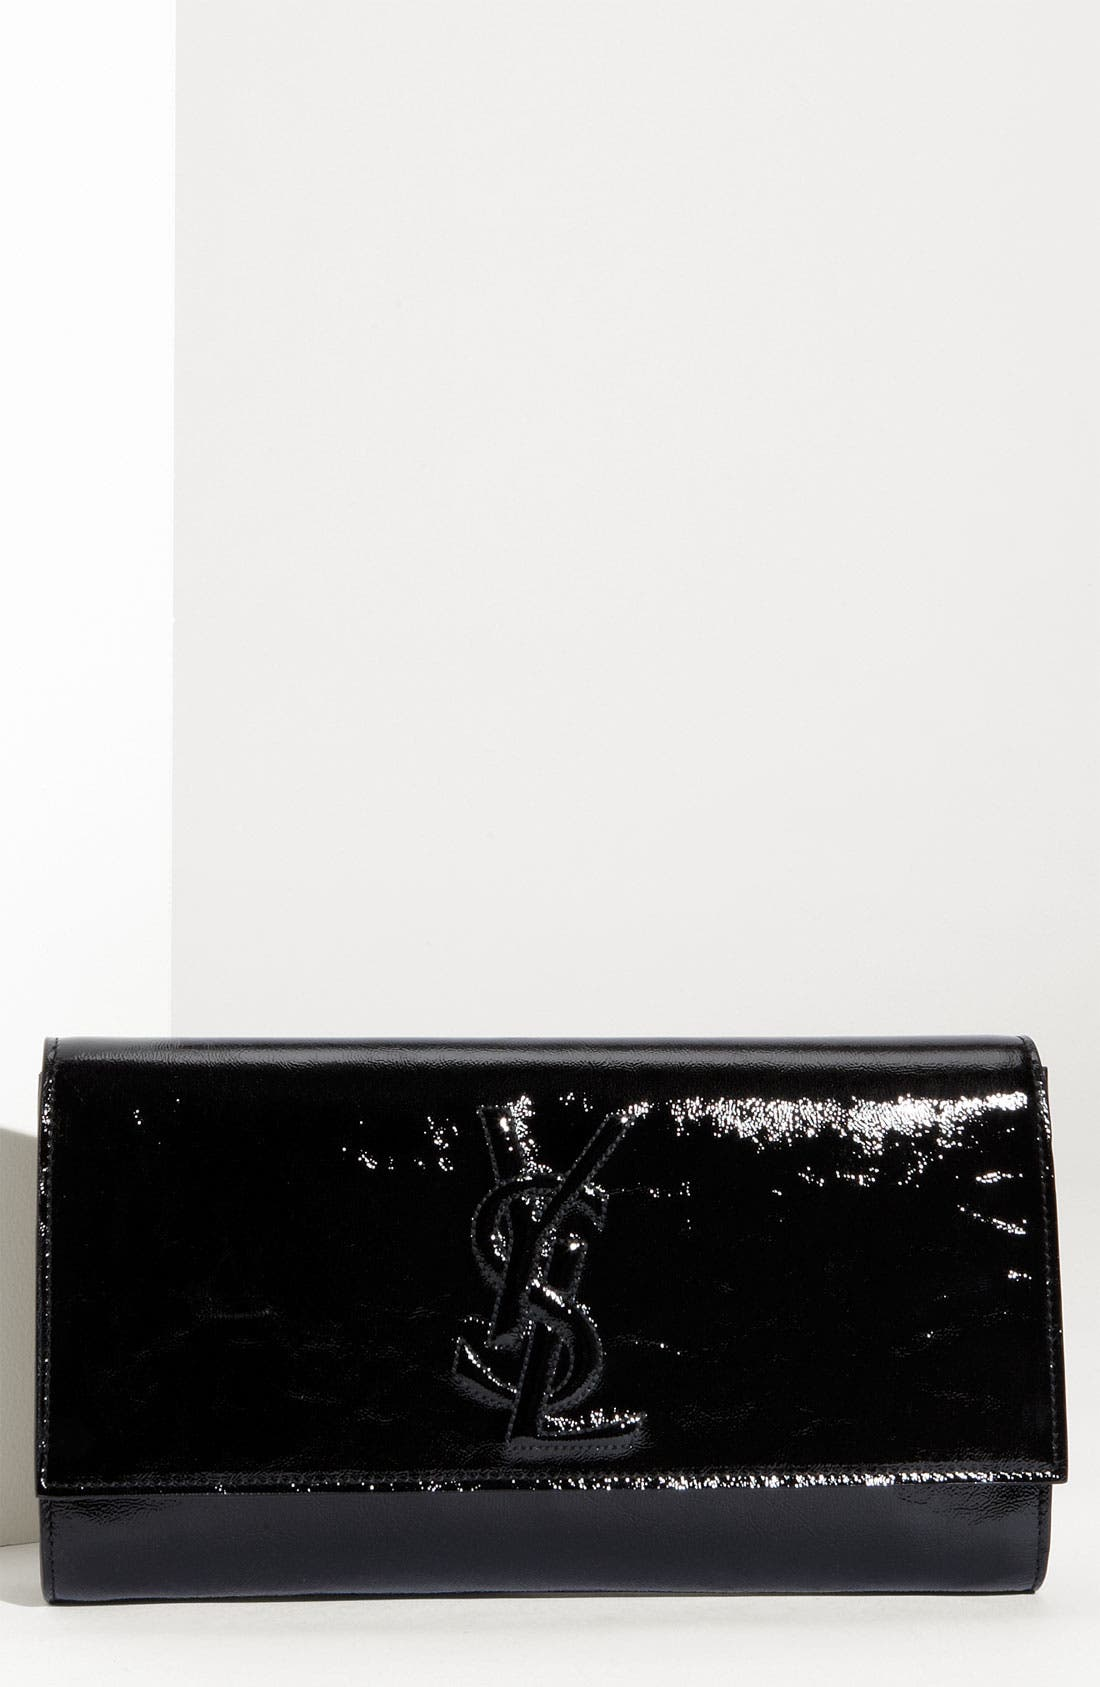 Main Image - Yves Saint Laurent 'Belle de Jour - Large' Patent Envelope Clutch